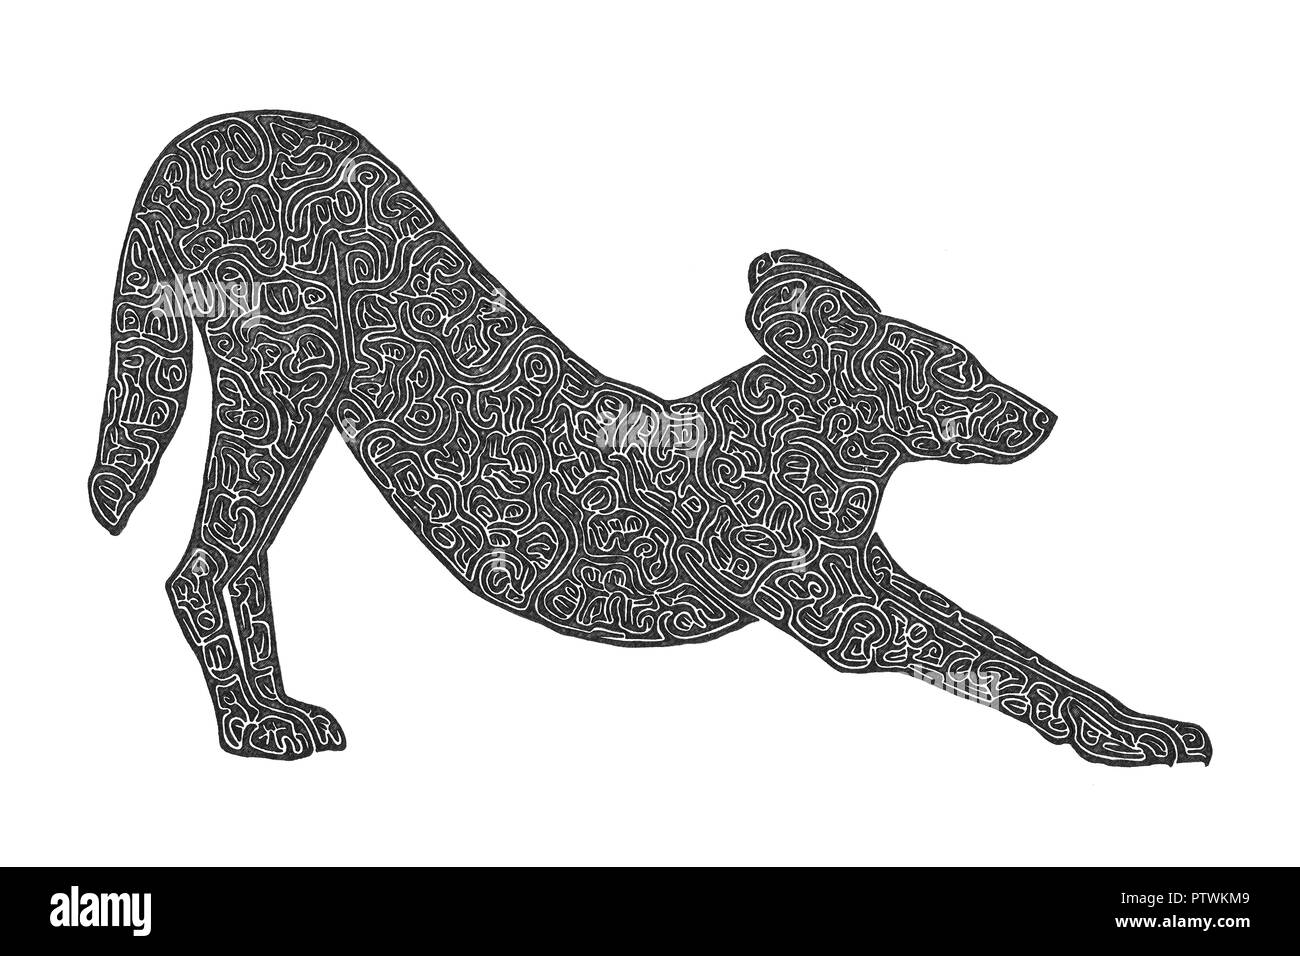 Illustration drawing of an african wild dog stretching its legs after sleep black and white maze lines